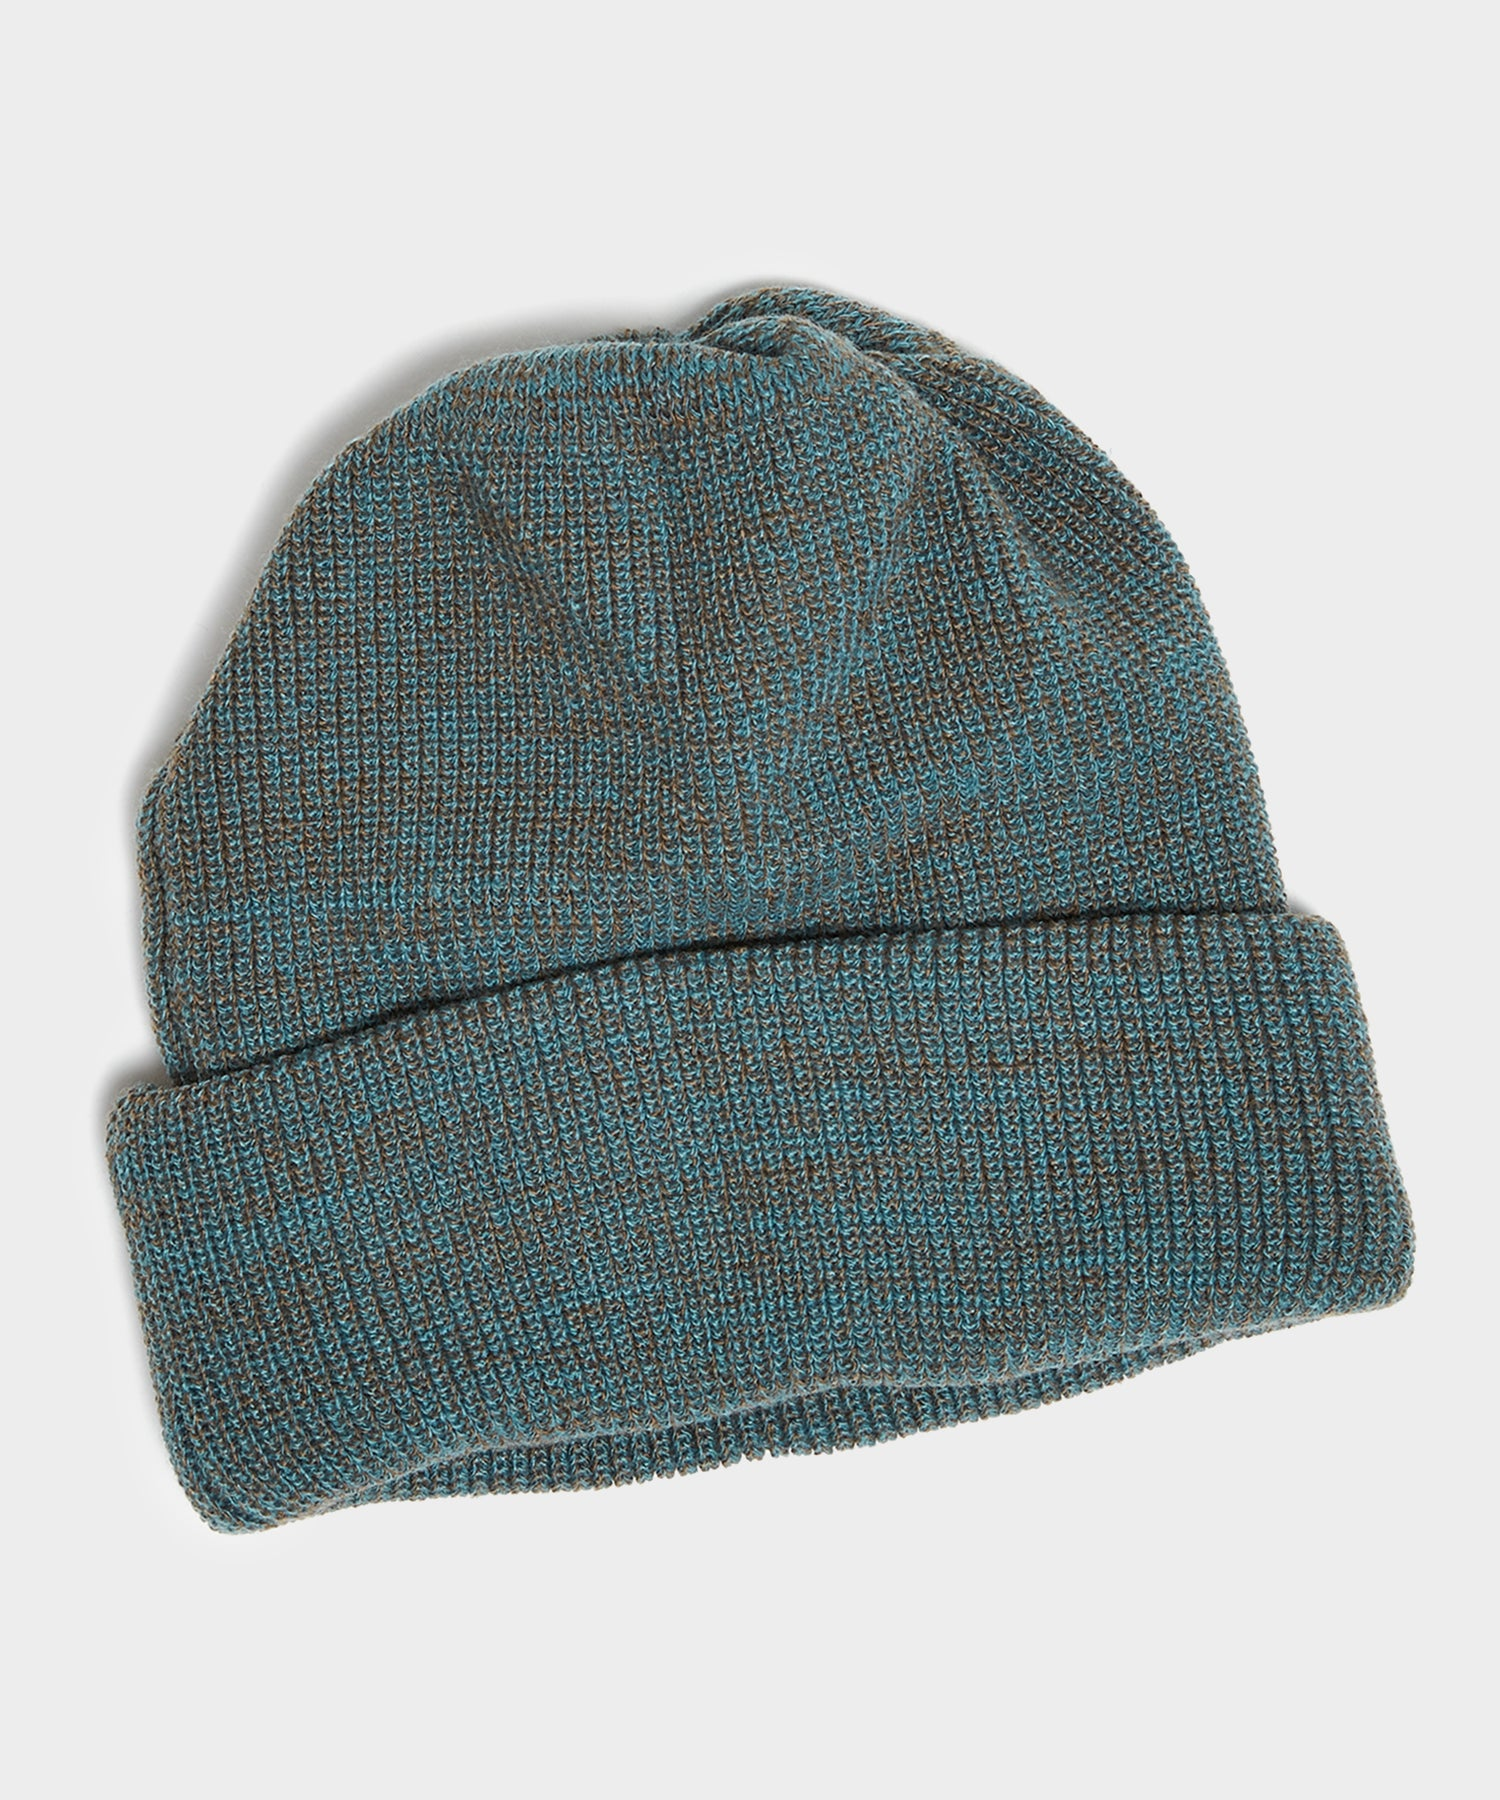 RoToTo Bulky Watchcap Beanie in Light Blue/Mocha